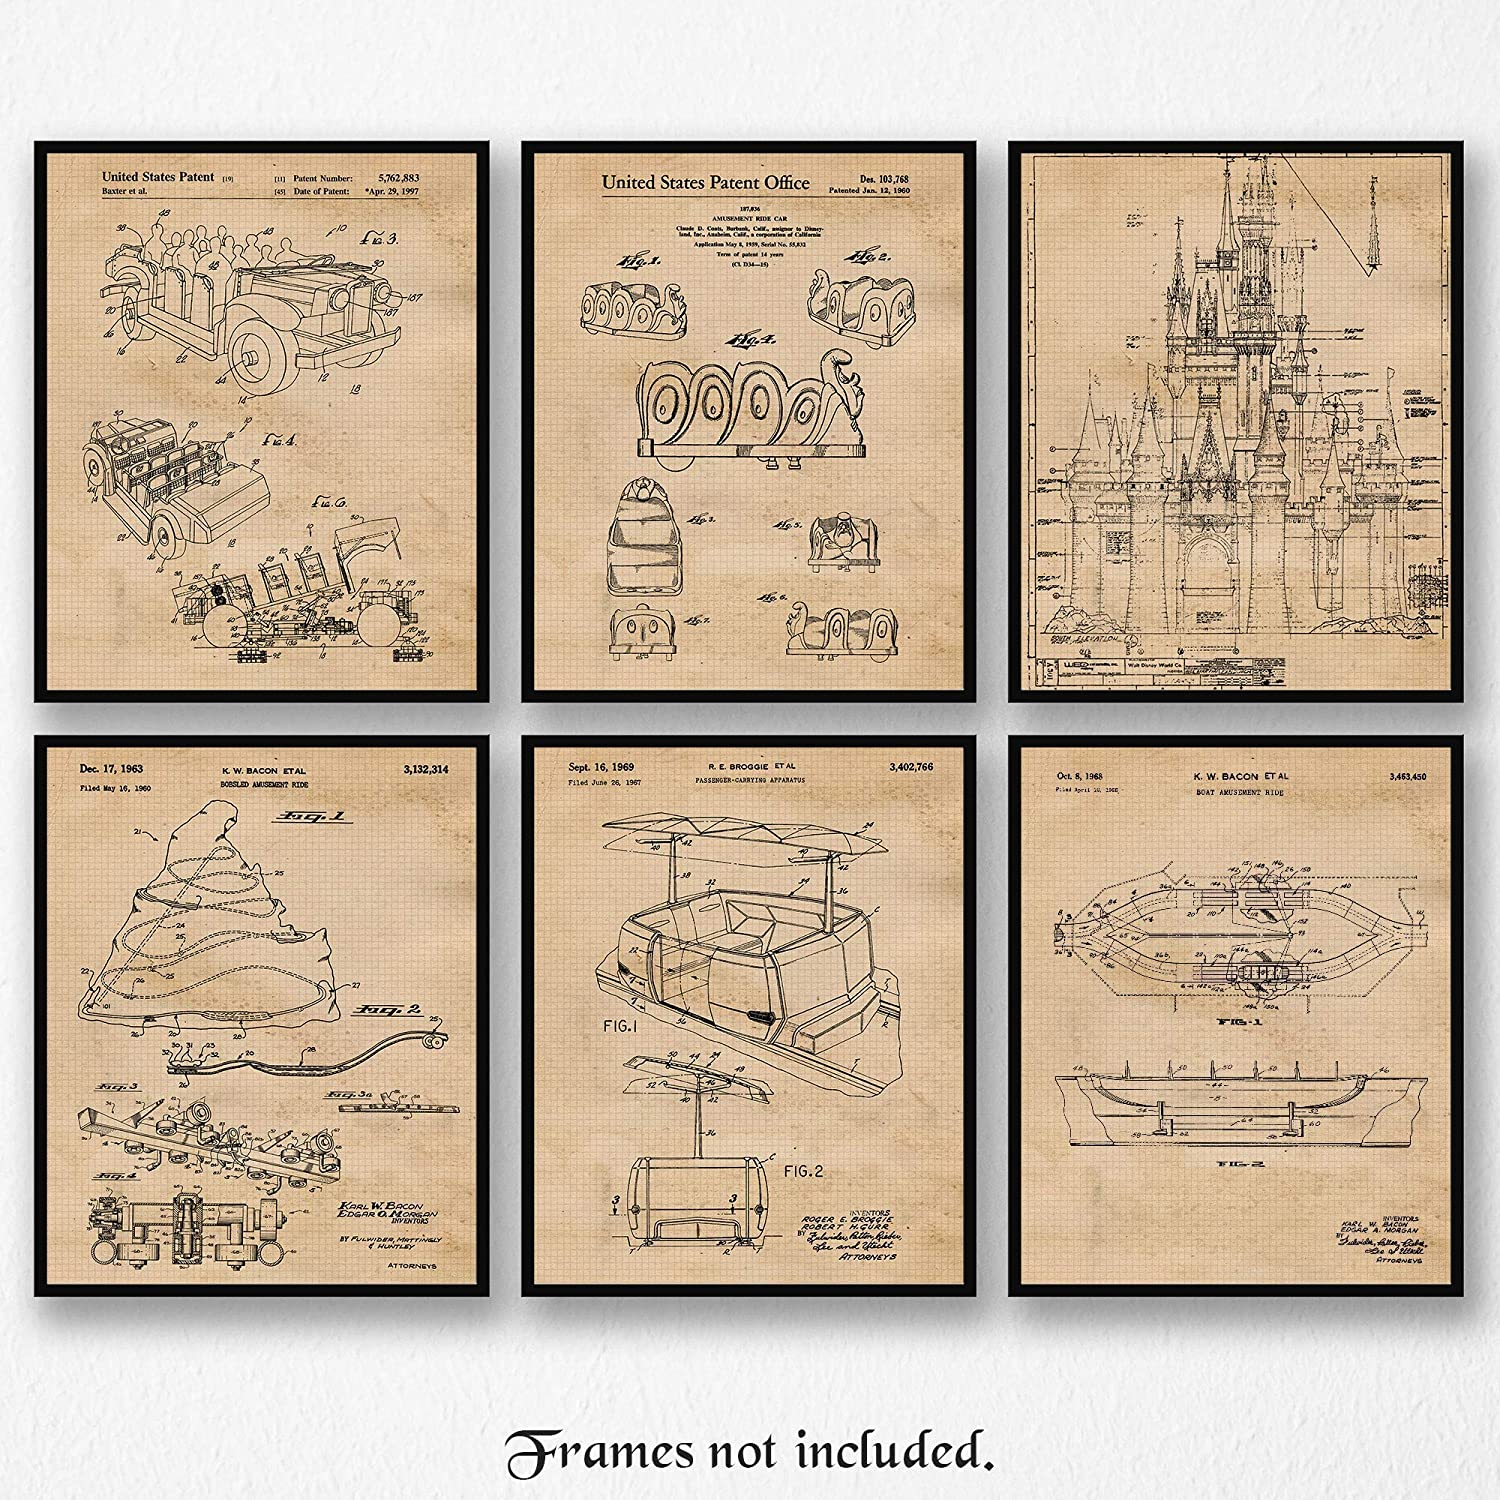 Vintage Disney Rides Patent Posters Prints, Set of 6 (8x10) Unframed Photos, Wall Art Decor Gifts Under 20 for Home, Office, Garage, Man Cave, Shop, College Student, Teacher, Theme Park & Movies Fan